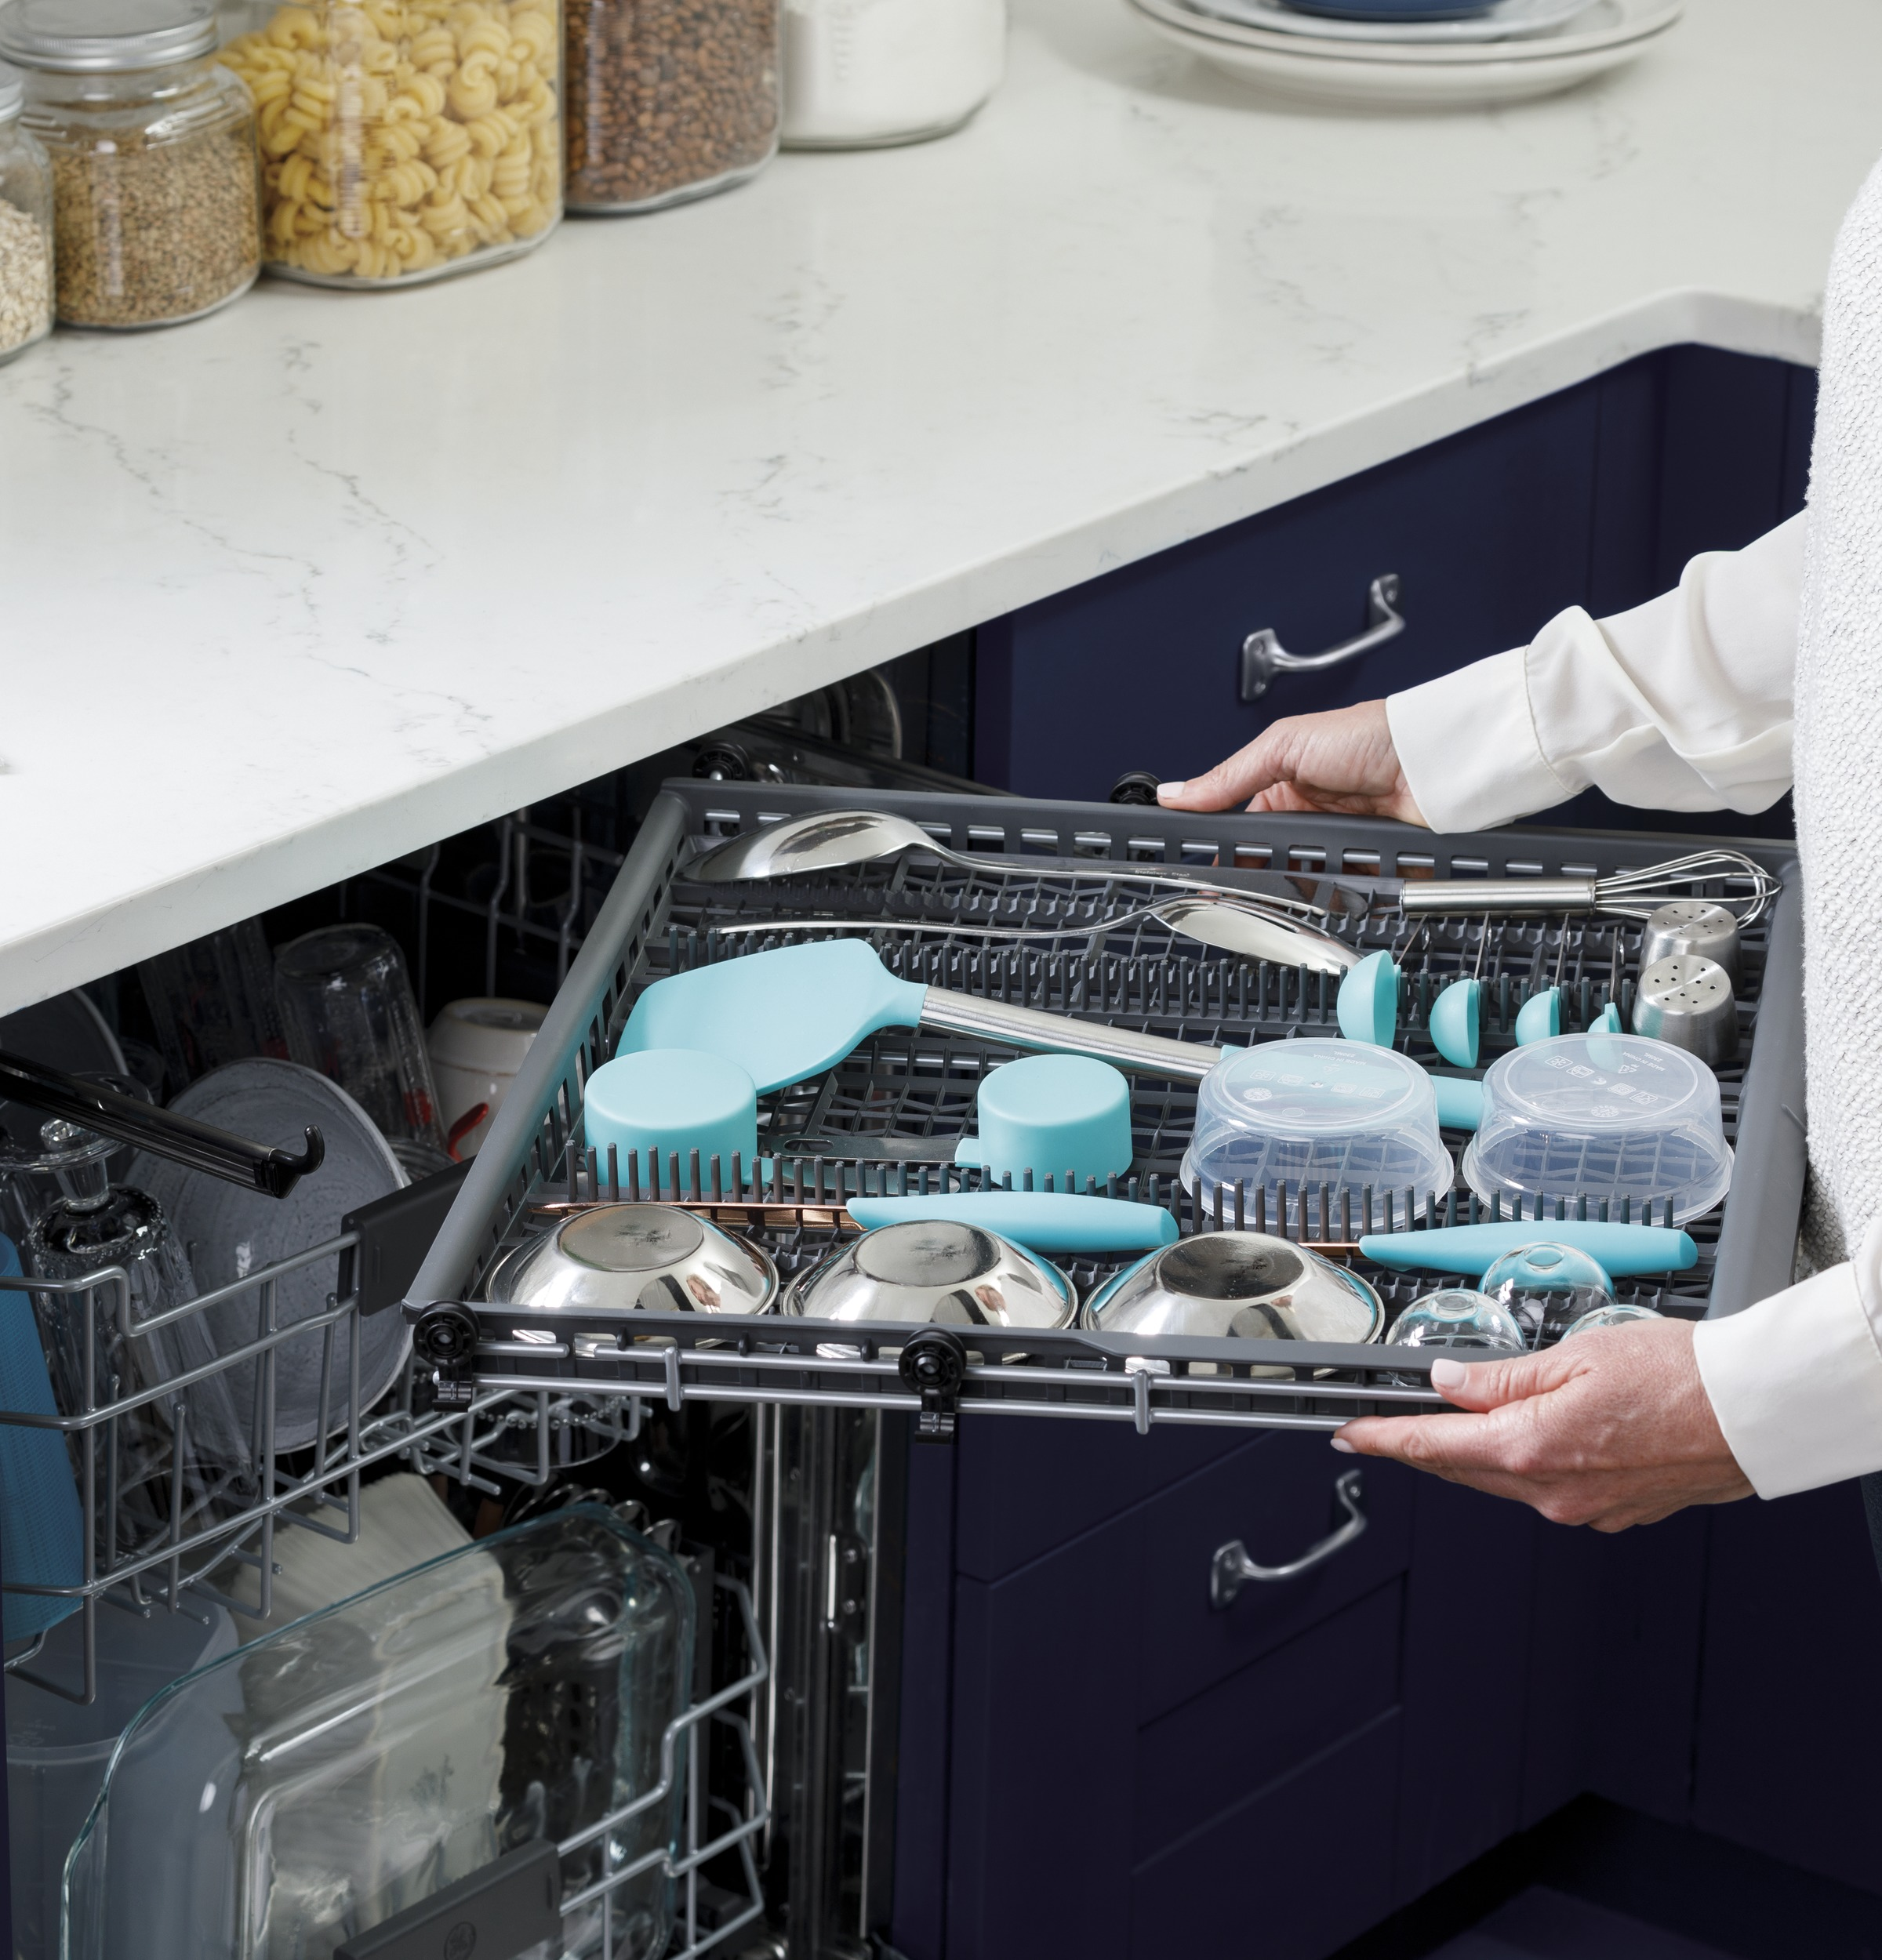 Model: GDT665SFNDS | GE GE® Top Control with Stainless Steel Interior Dishwasher with Sanitize Cycle & Dry Boost with Fan Assist